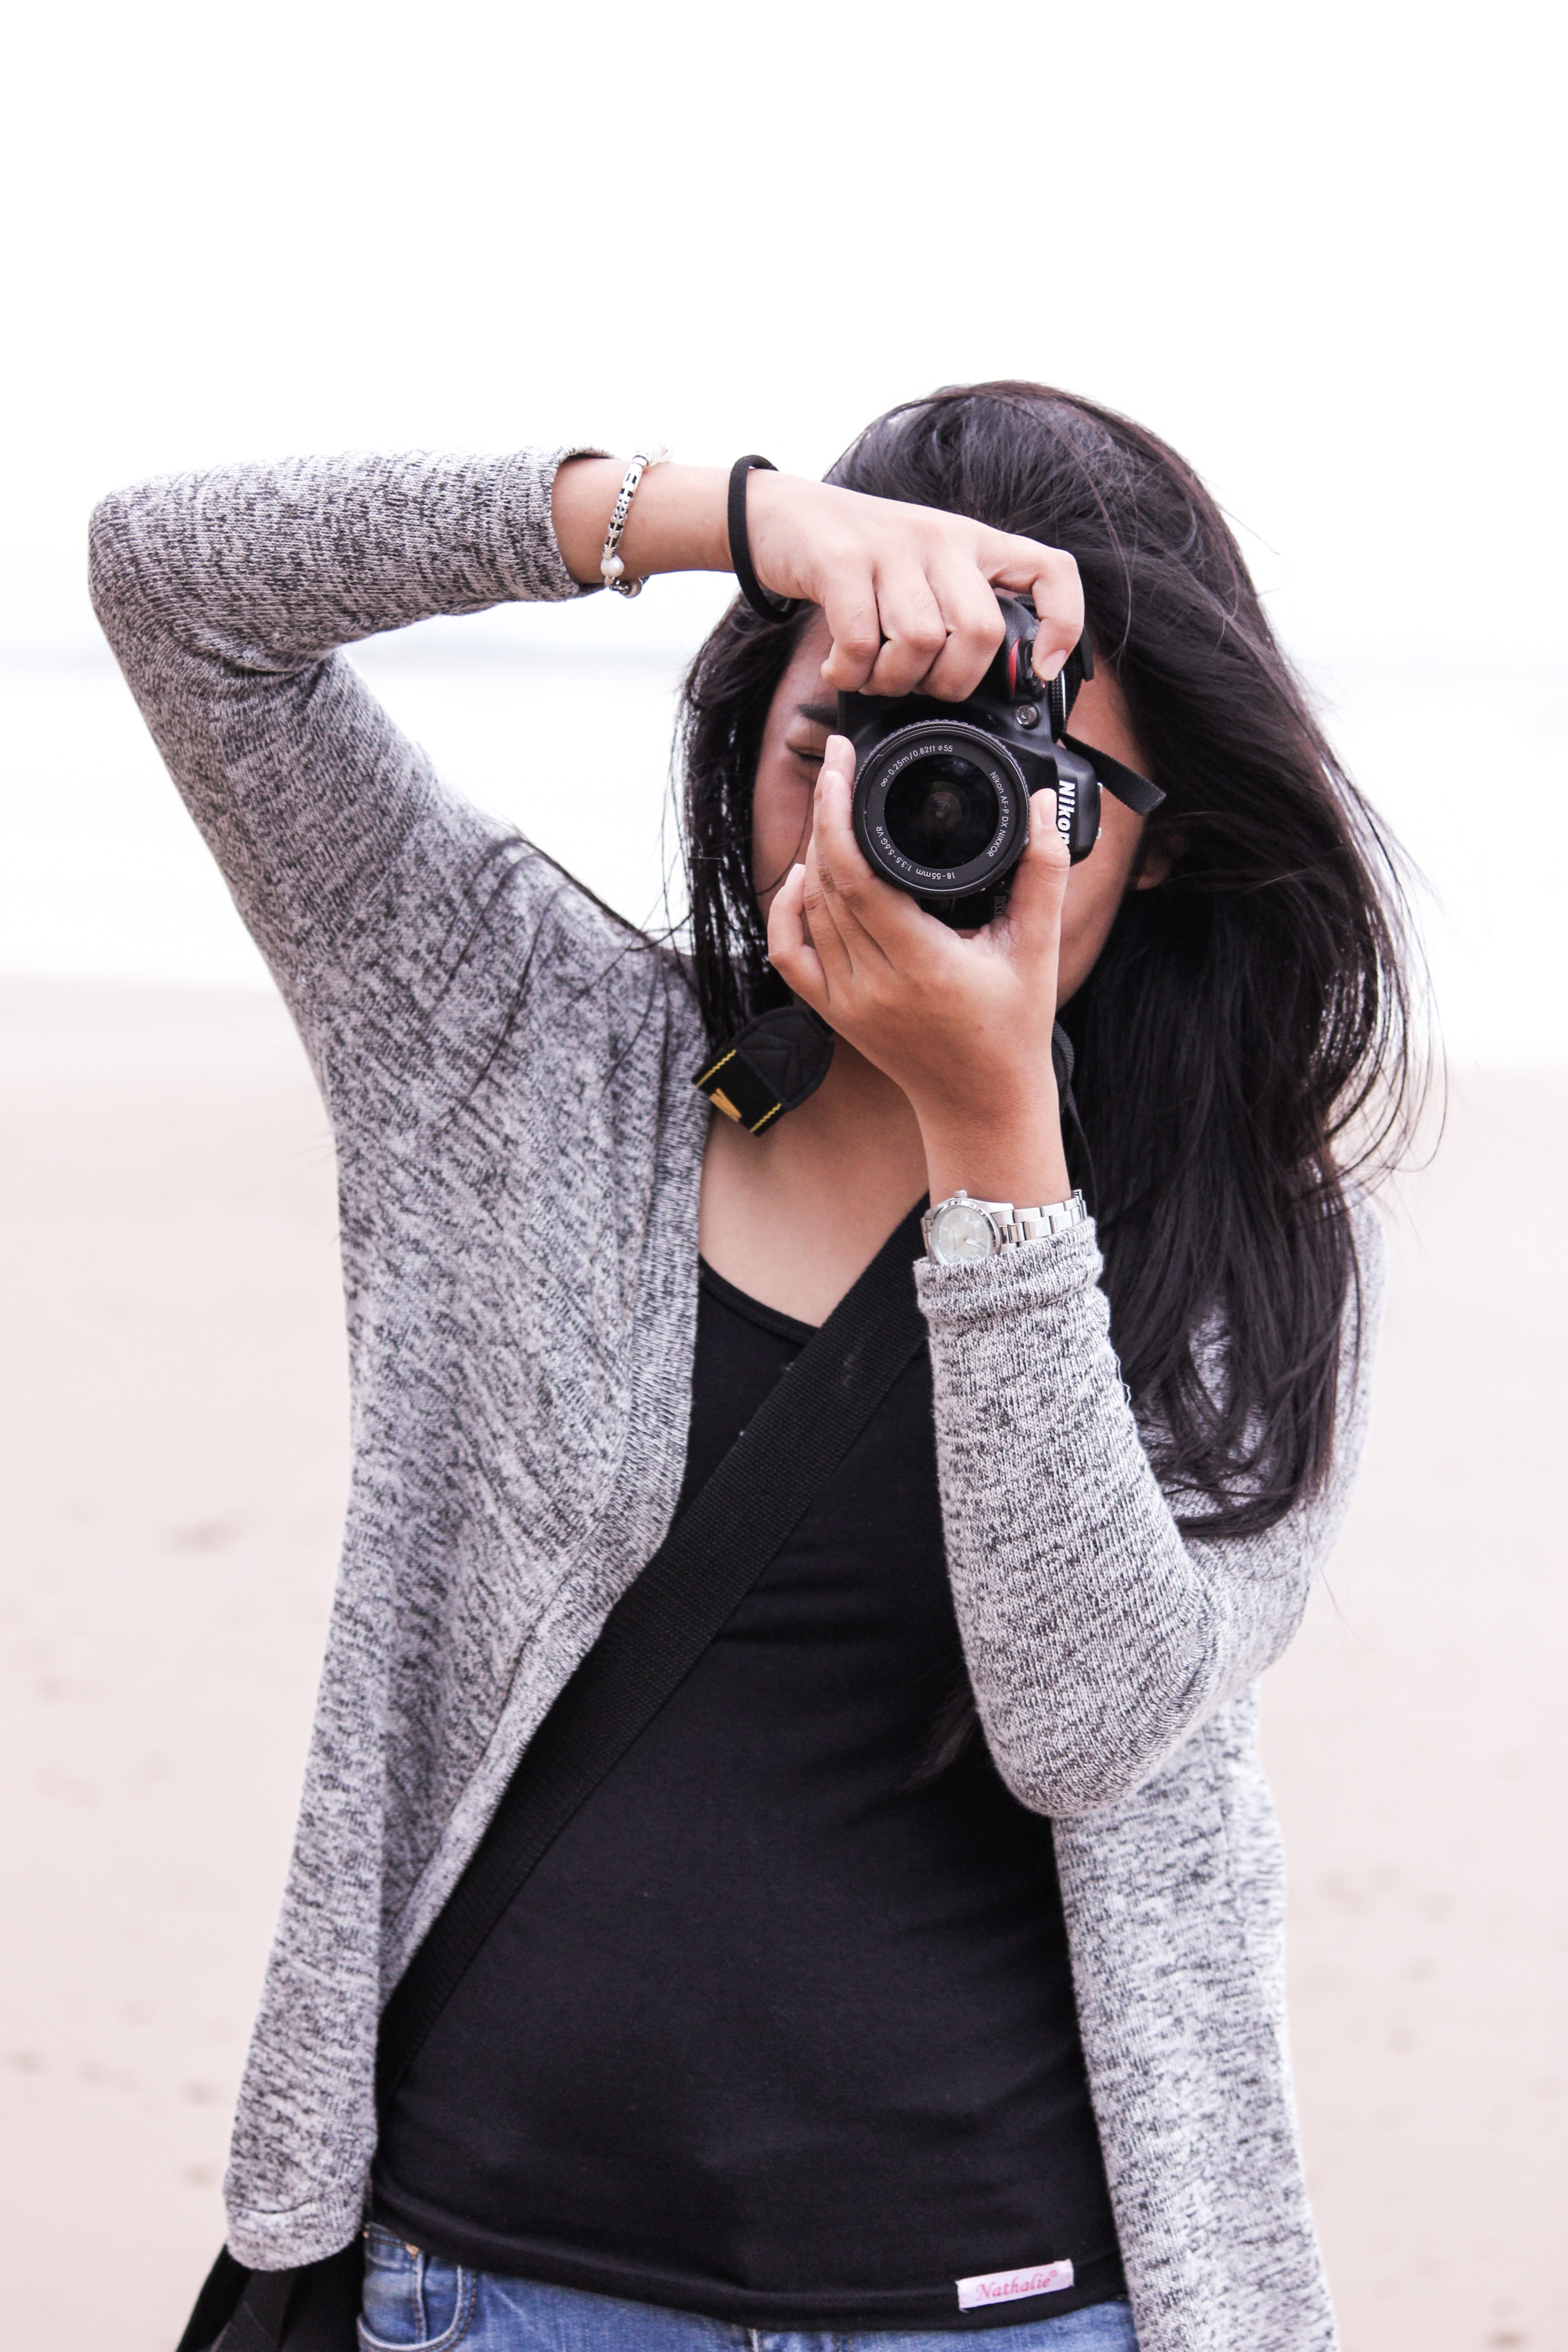 Woman in Gray Cardigan and Black Shirt Holding Black Dslr Camera, Outfit, Young, Woman, Wear, HQ Photo